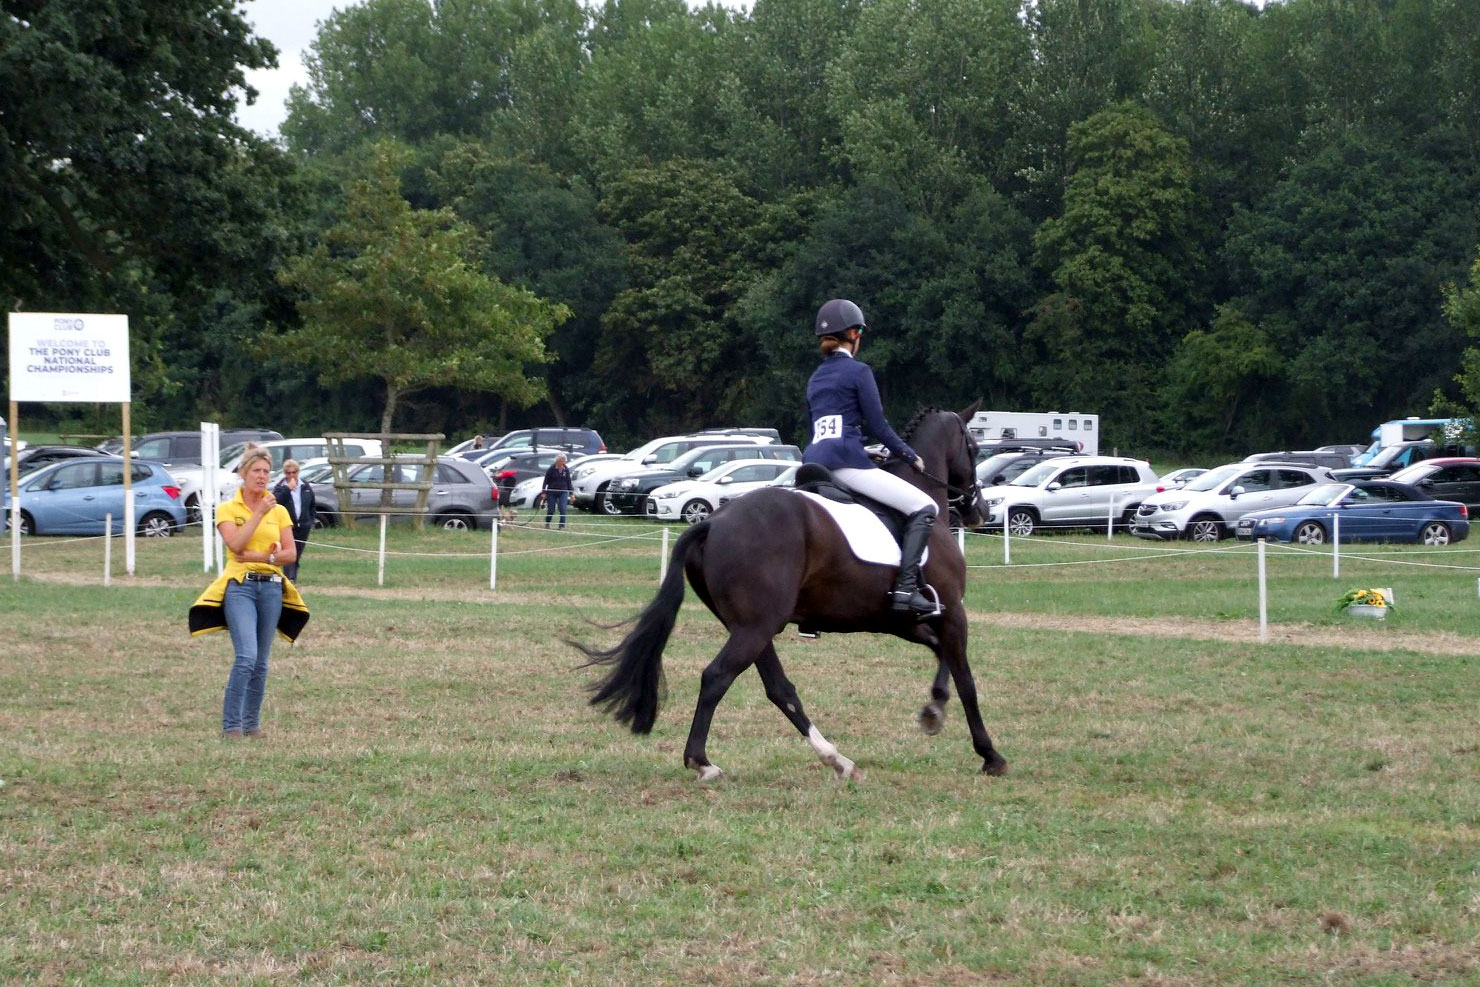 Marie coaching at the Pony Club Championships